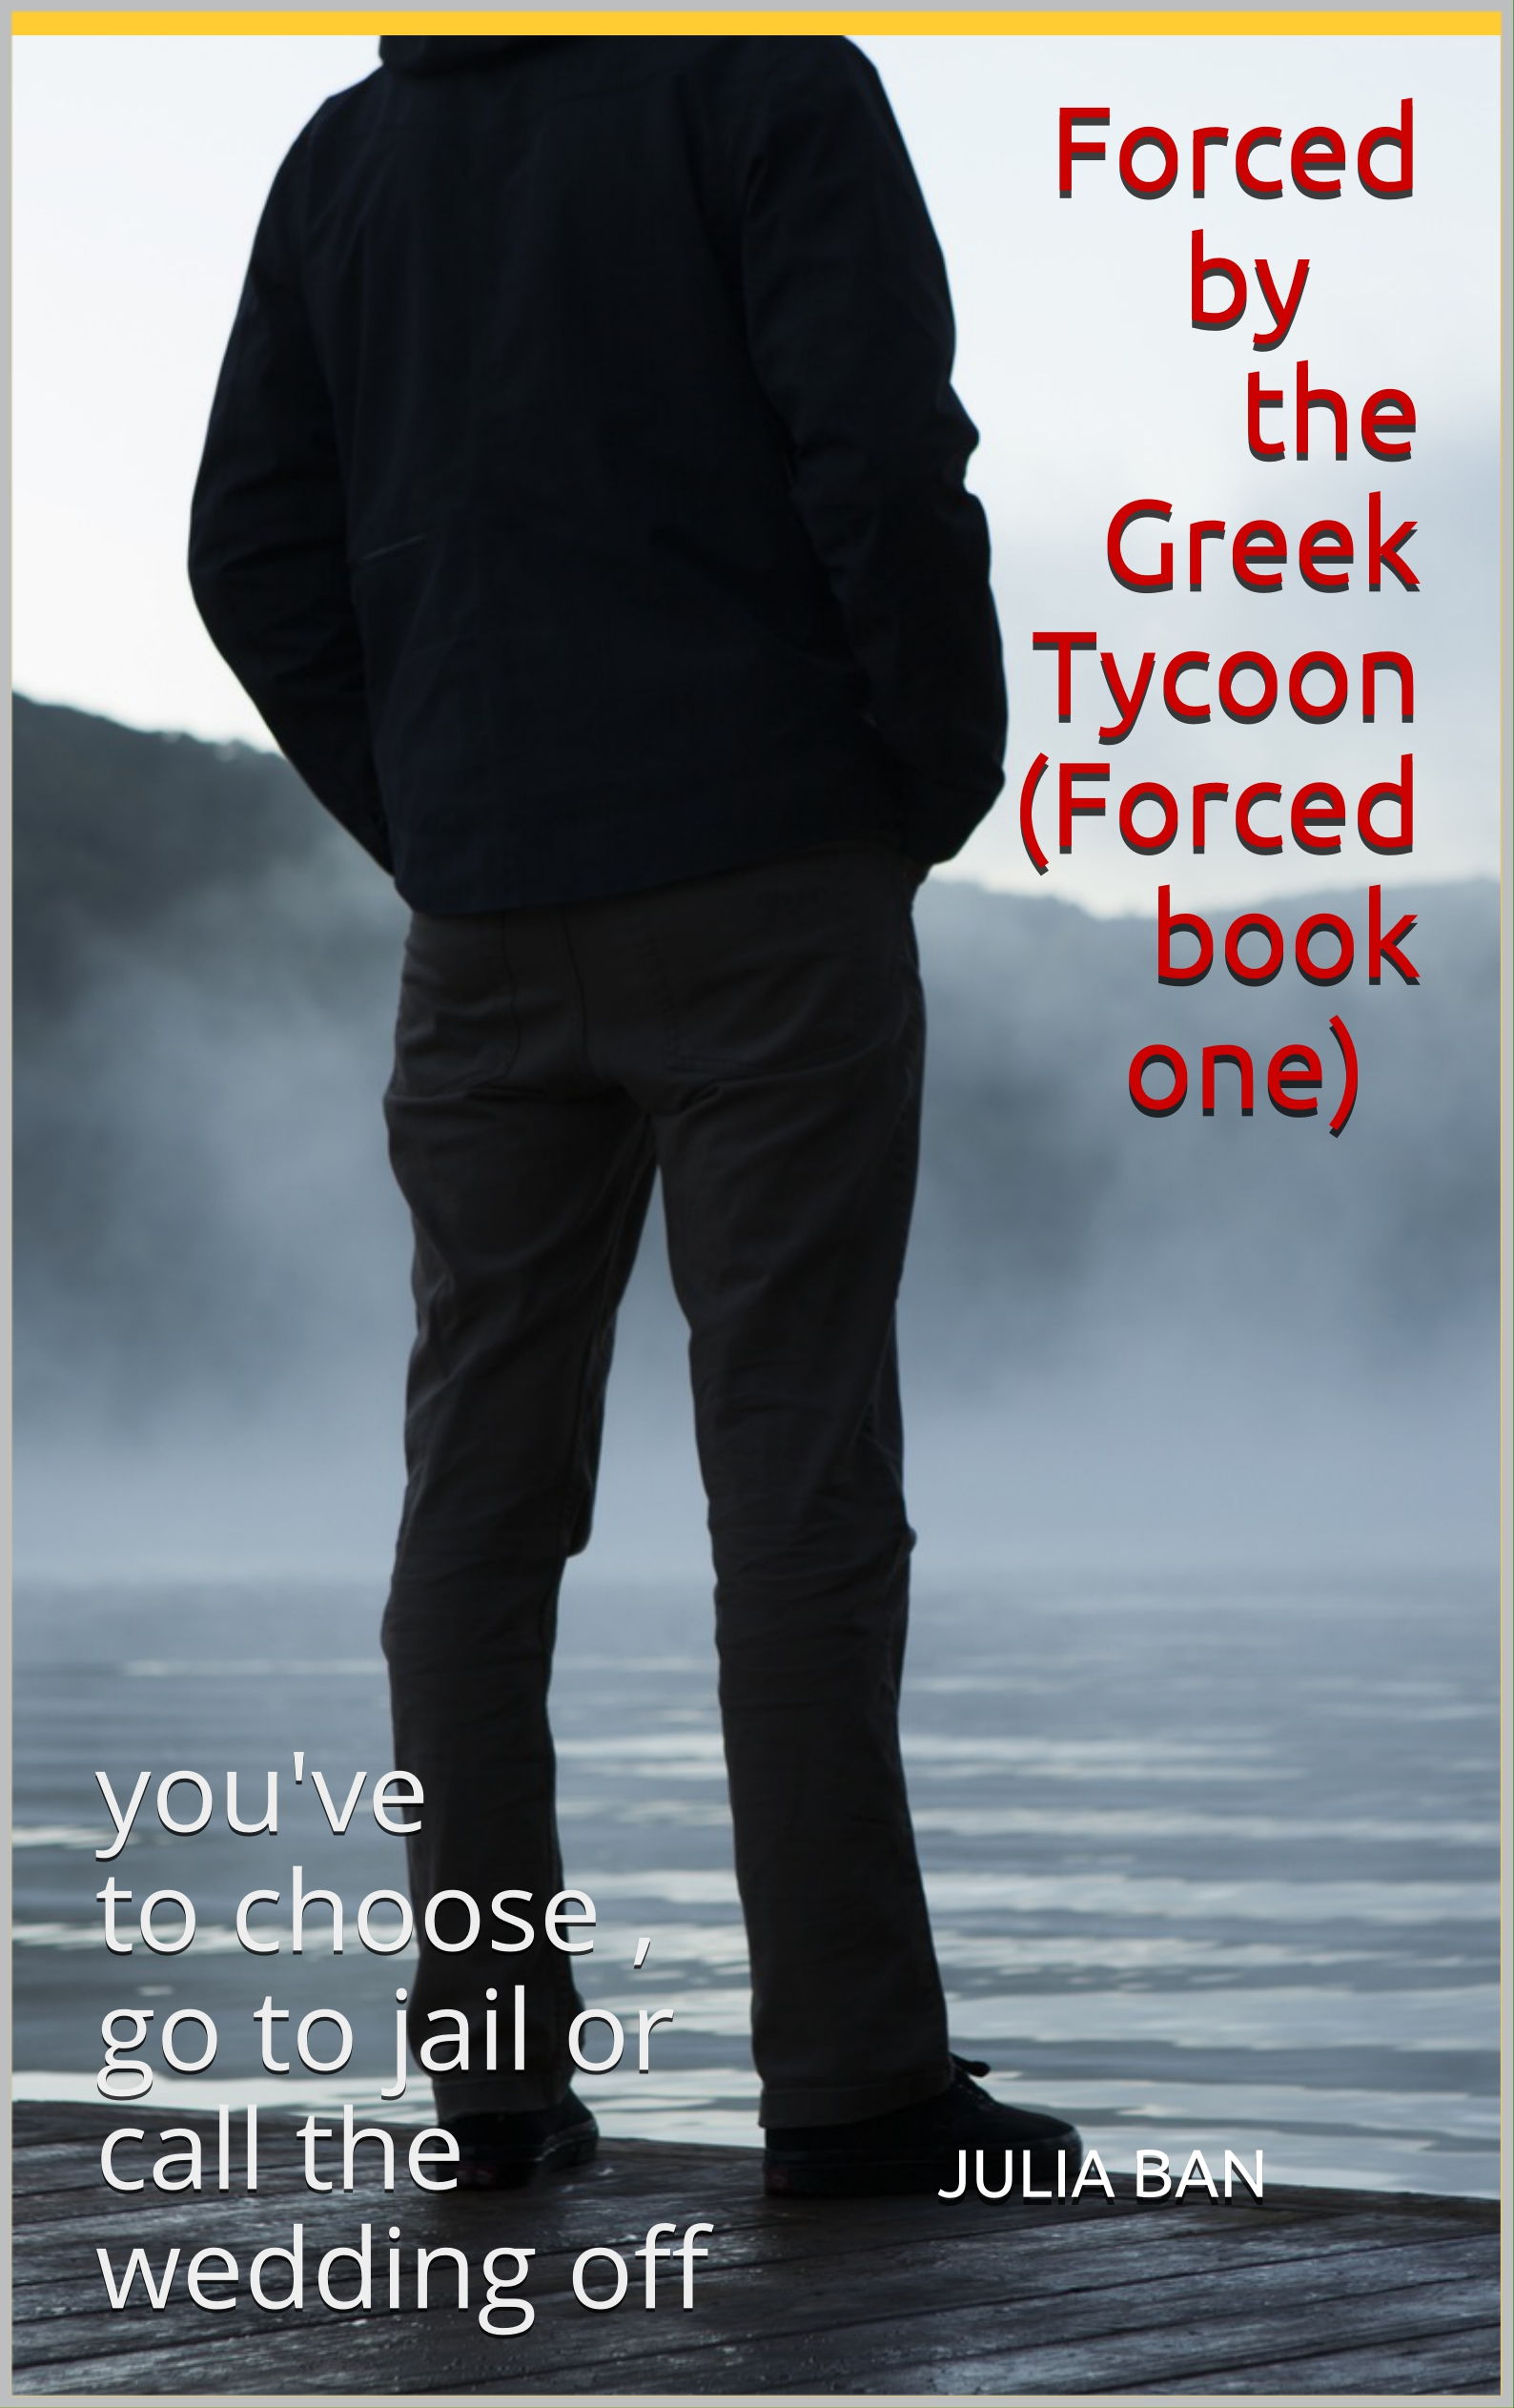 Smashwords – Forced by The Greek Tycoon (Forced book one